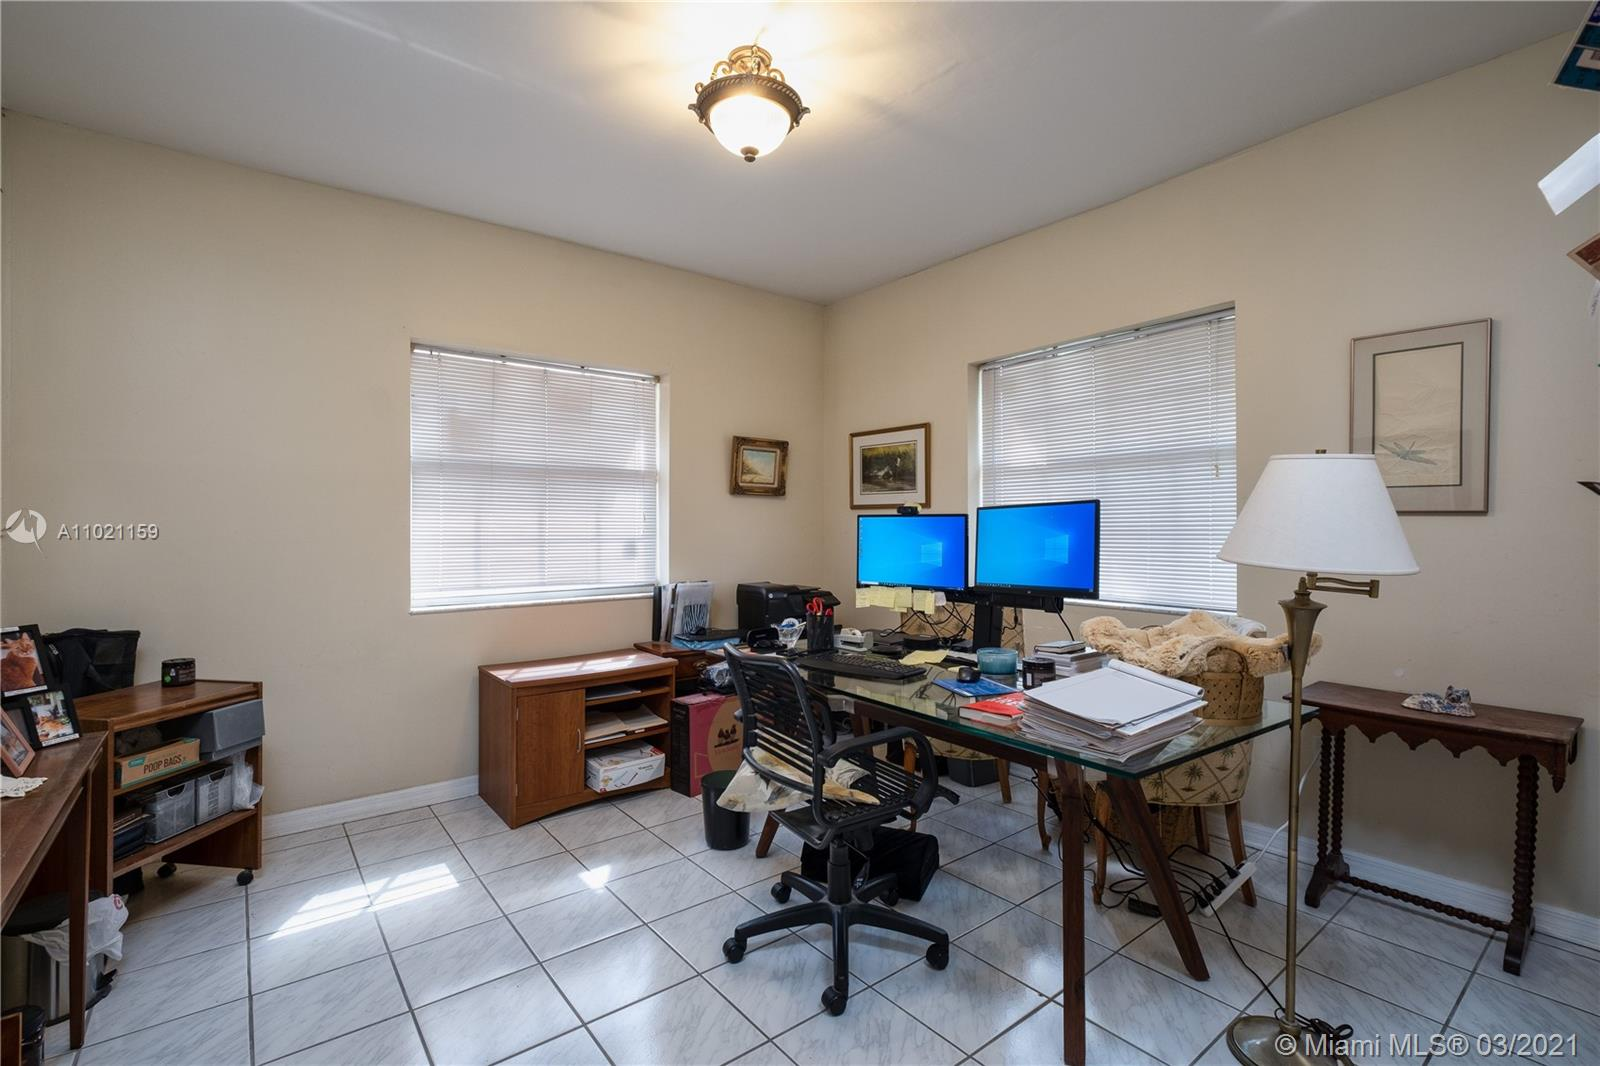 /  2468 sq. ft. $ 2021-03-31 0 Photo